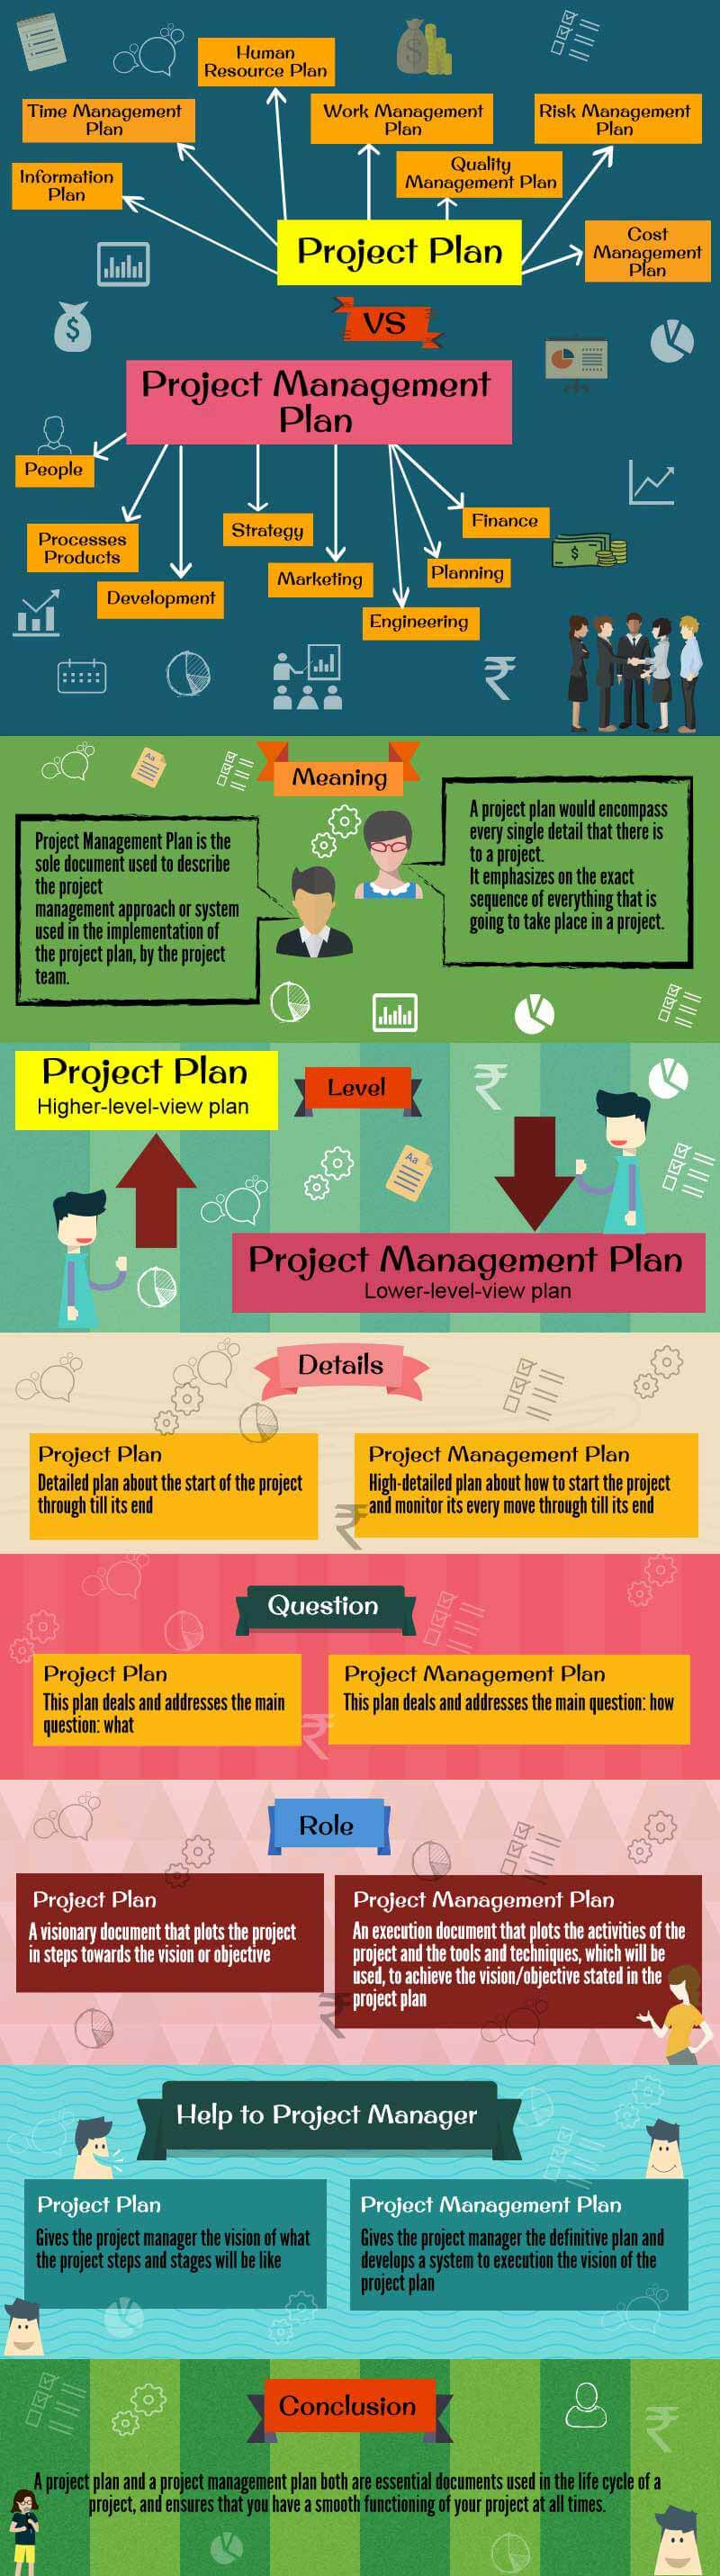 Project Plan vs Project Management Plan info